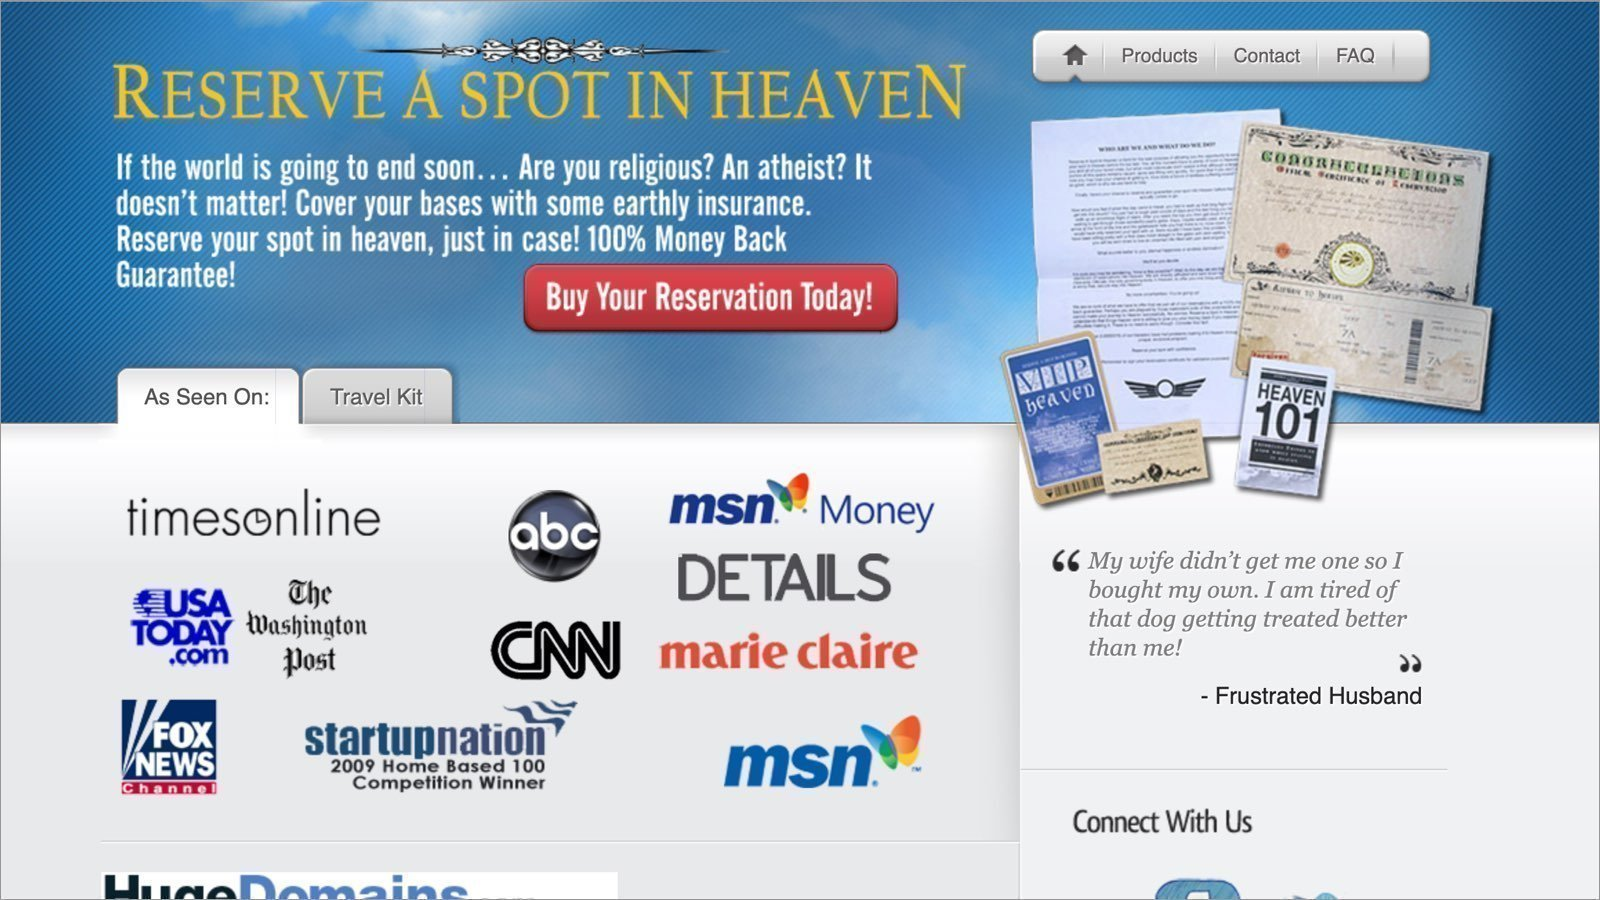 crazy business ideas Reserve A Spot In Heaven